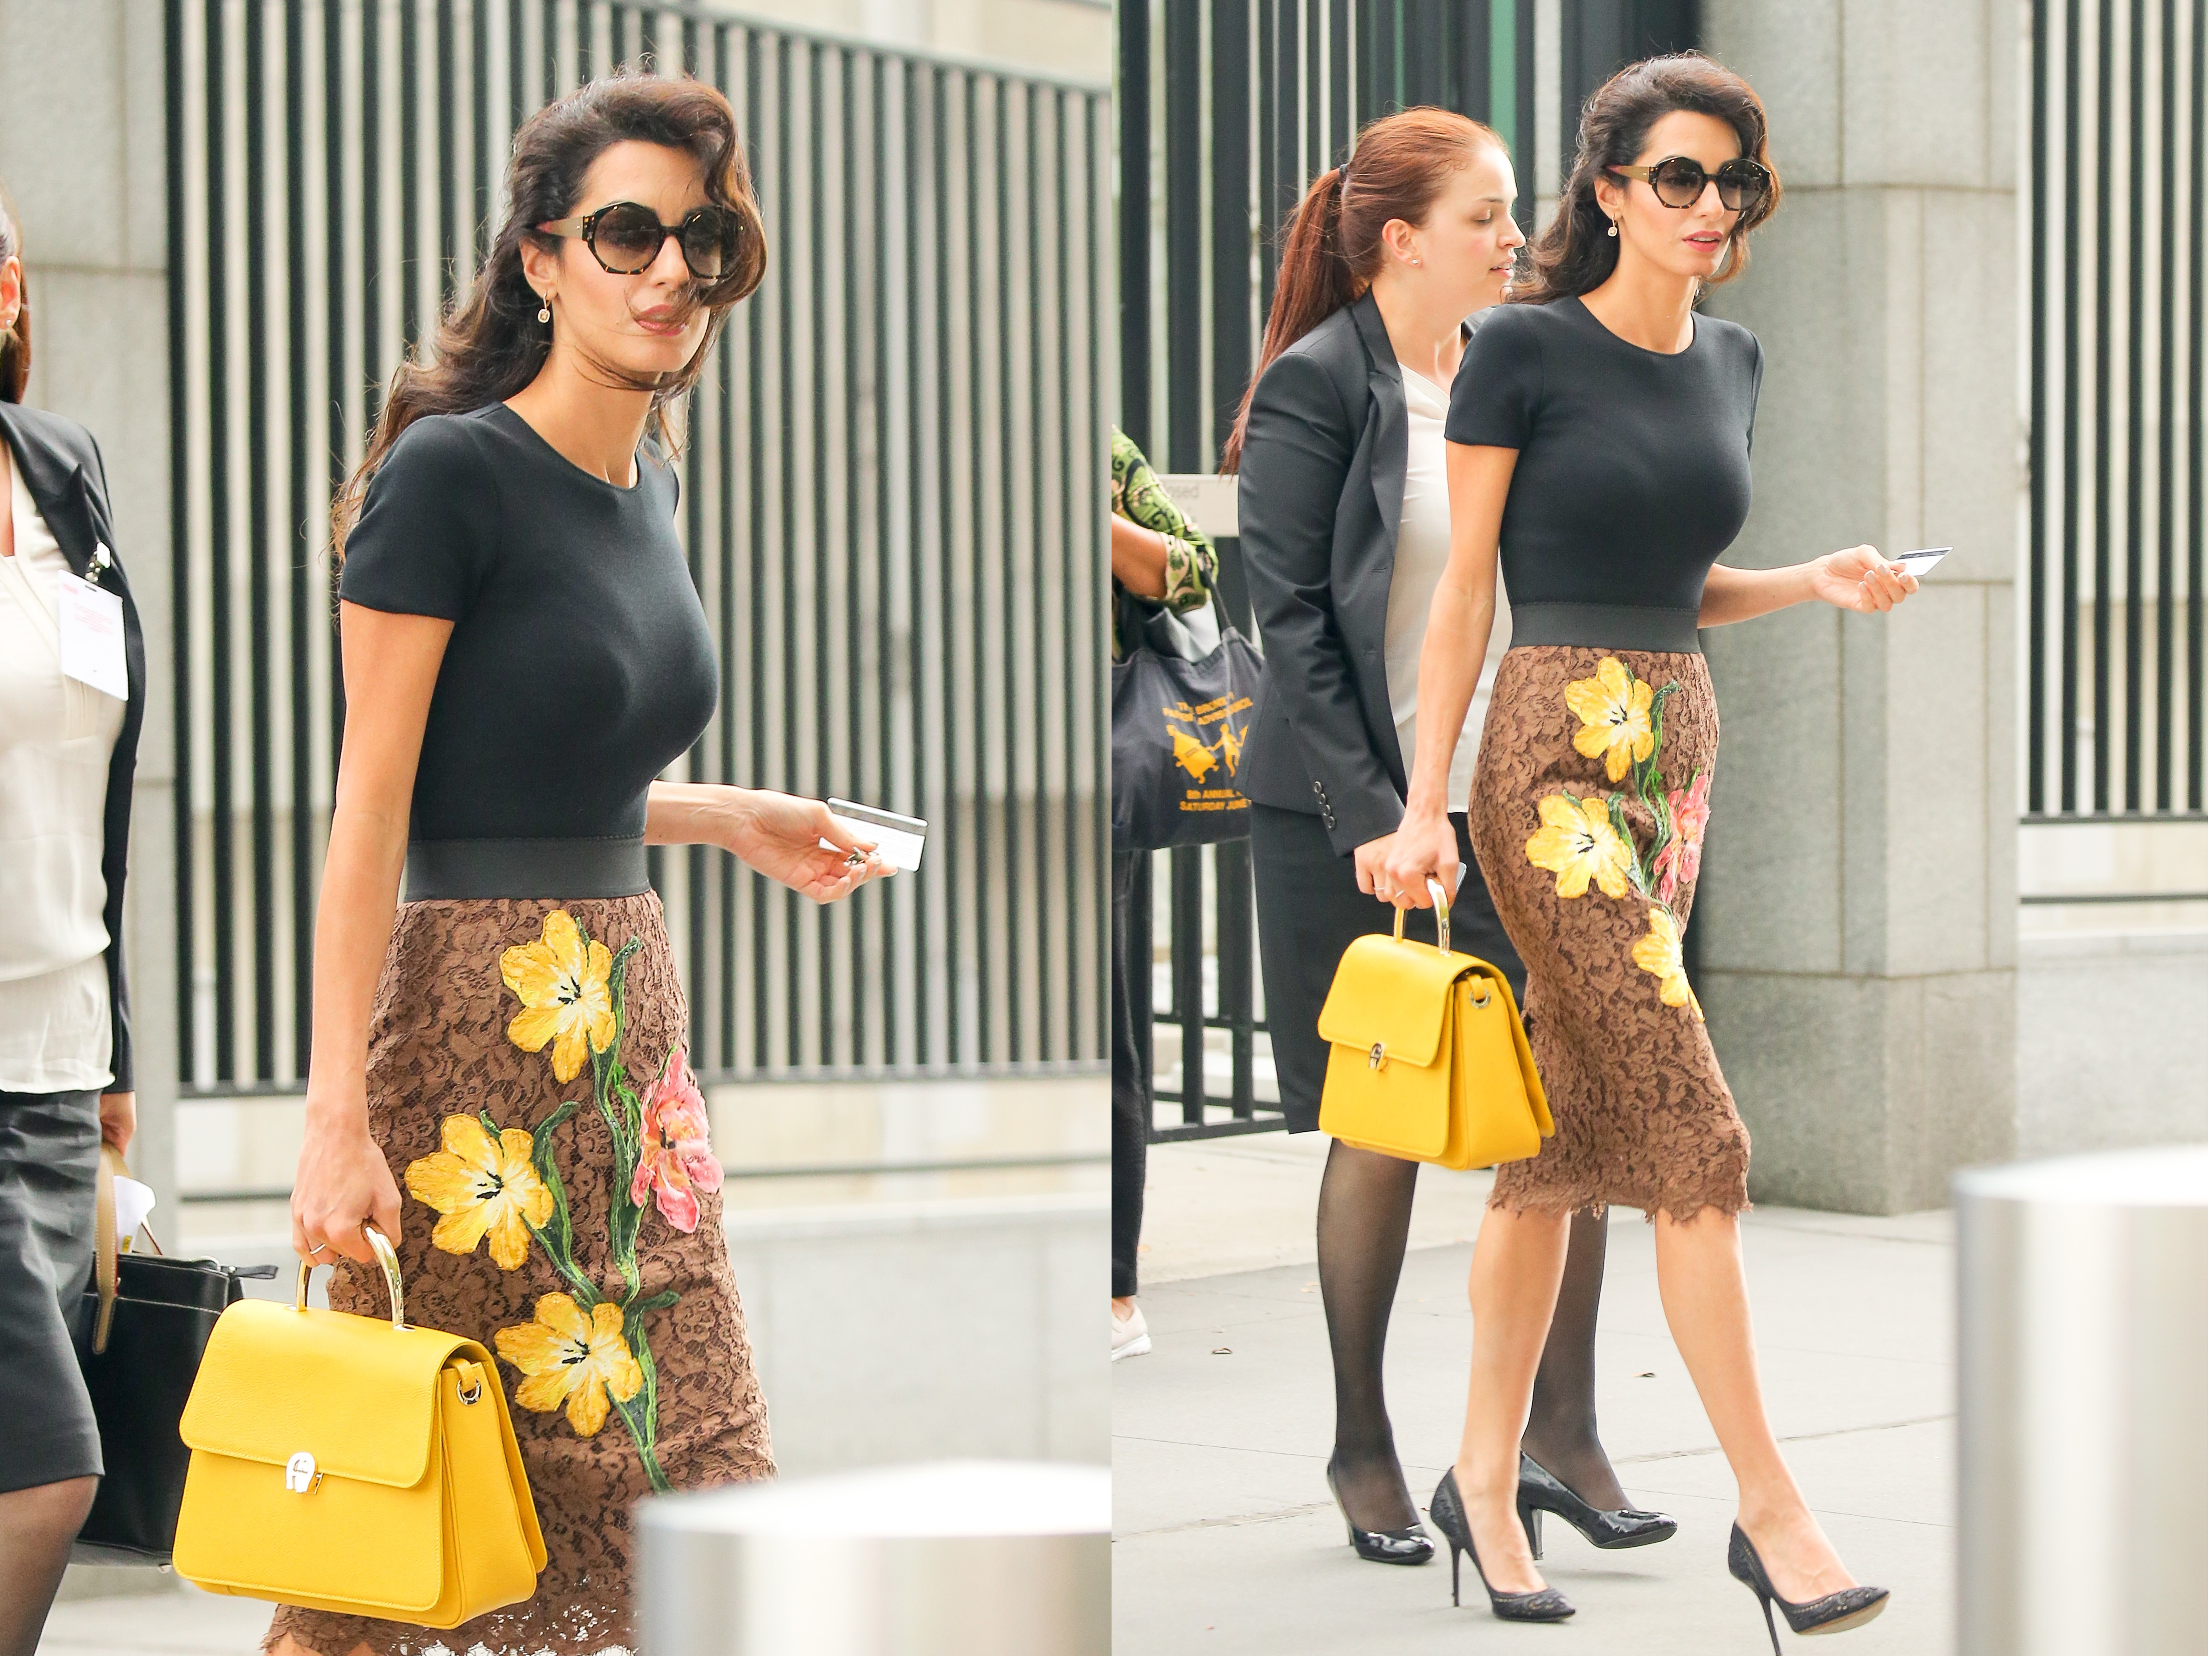 EXCLUSIVE: Amal Clooney wears a Dolce & Gabbana floral skirt while out and about in New York City Pictured: Amal Clooney Ref: SPL1363952  280916   EXCLUSIVE Picture by: Felipe Ramales / Splash News Splash News and Pictures Los Angeles:	310-821-2666 New York:	212-619-2666 London:	870-934-2666 photodesk@splashnews.com